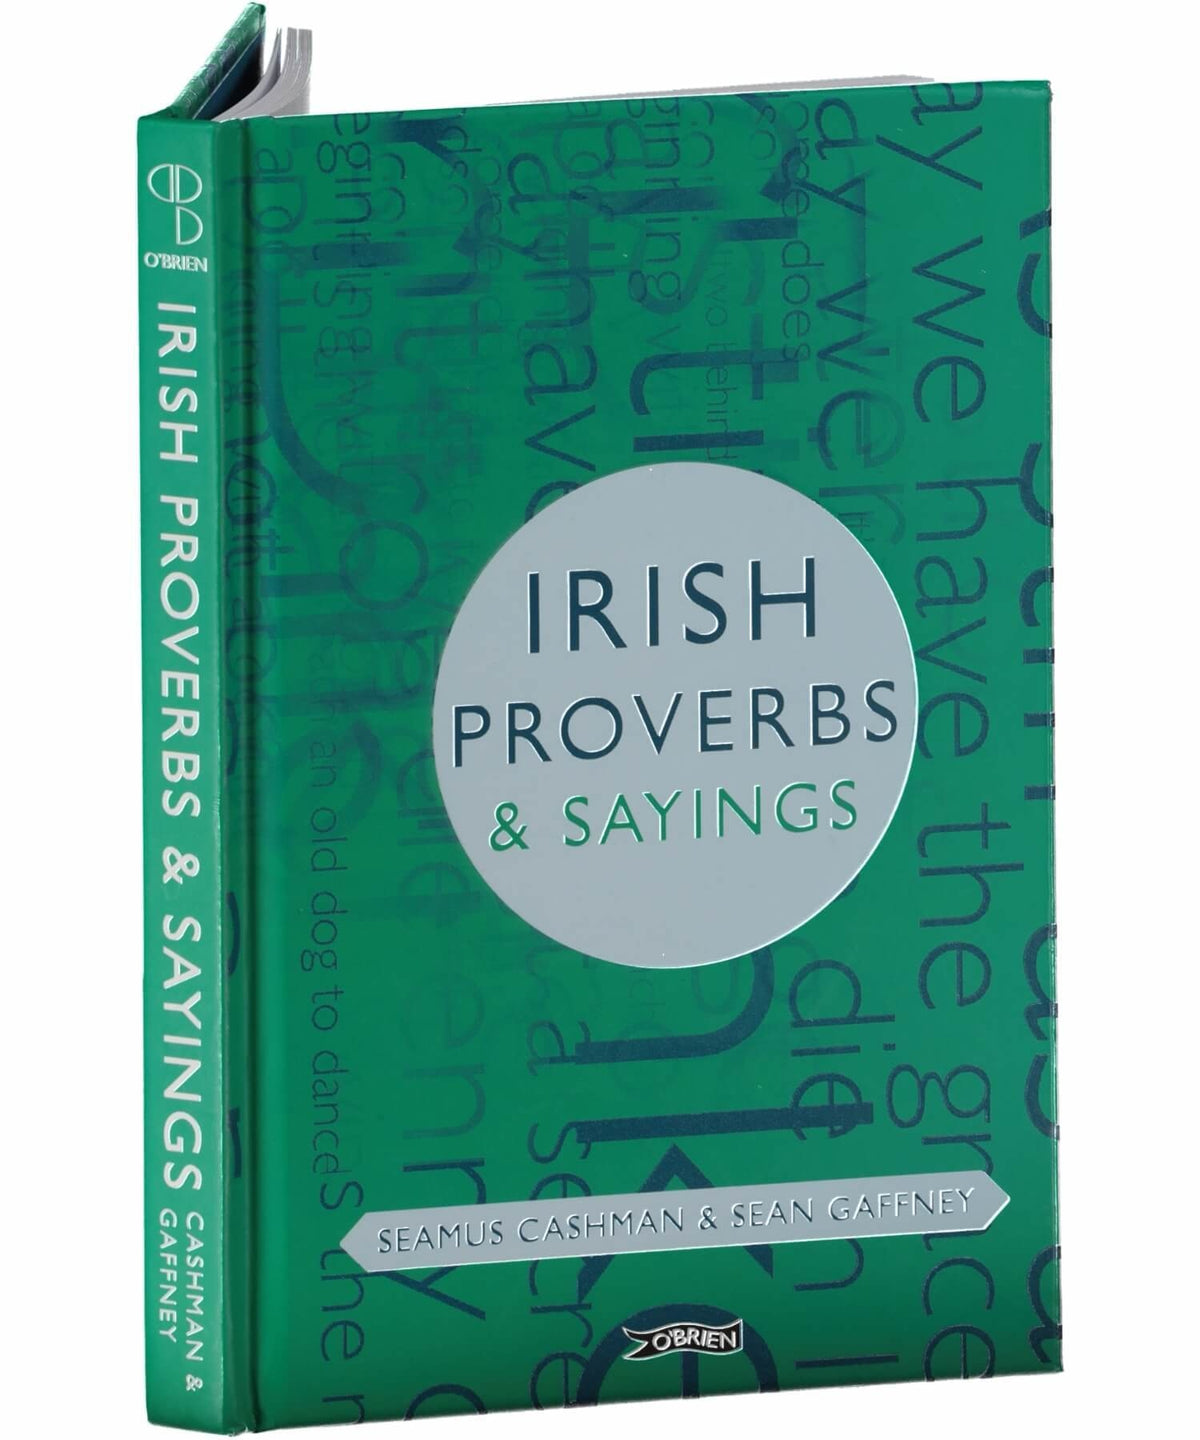 Irish Proverbs & Sayings - [The O'Brien Press] - Books & Stationery - Irish Gifts